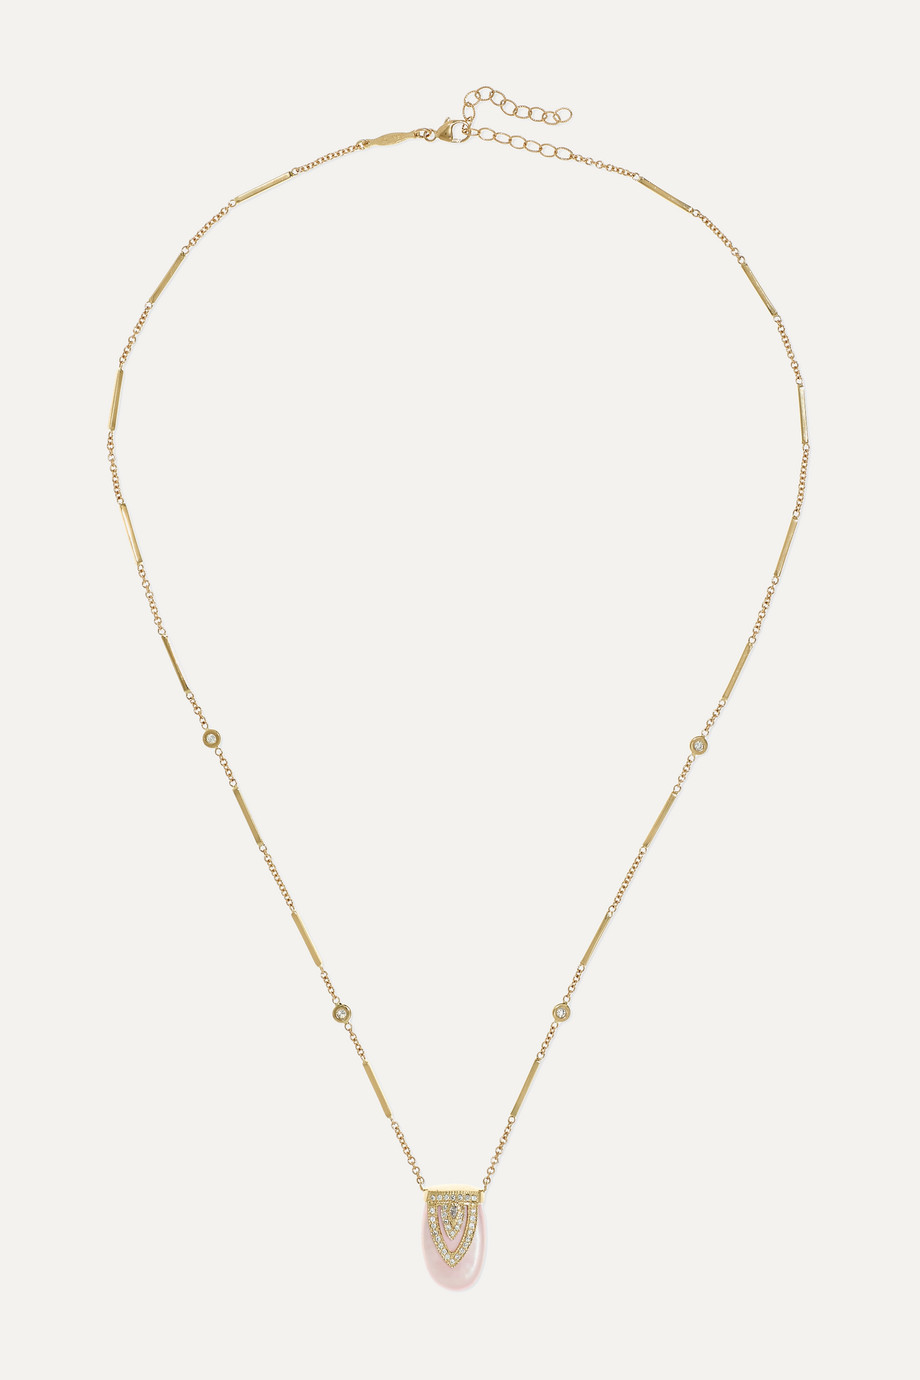 Jacquie Aiche Aladdin 14-karat gold, mother-of-pearl and diamond necklace